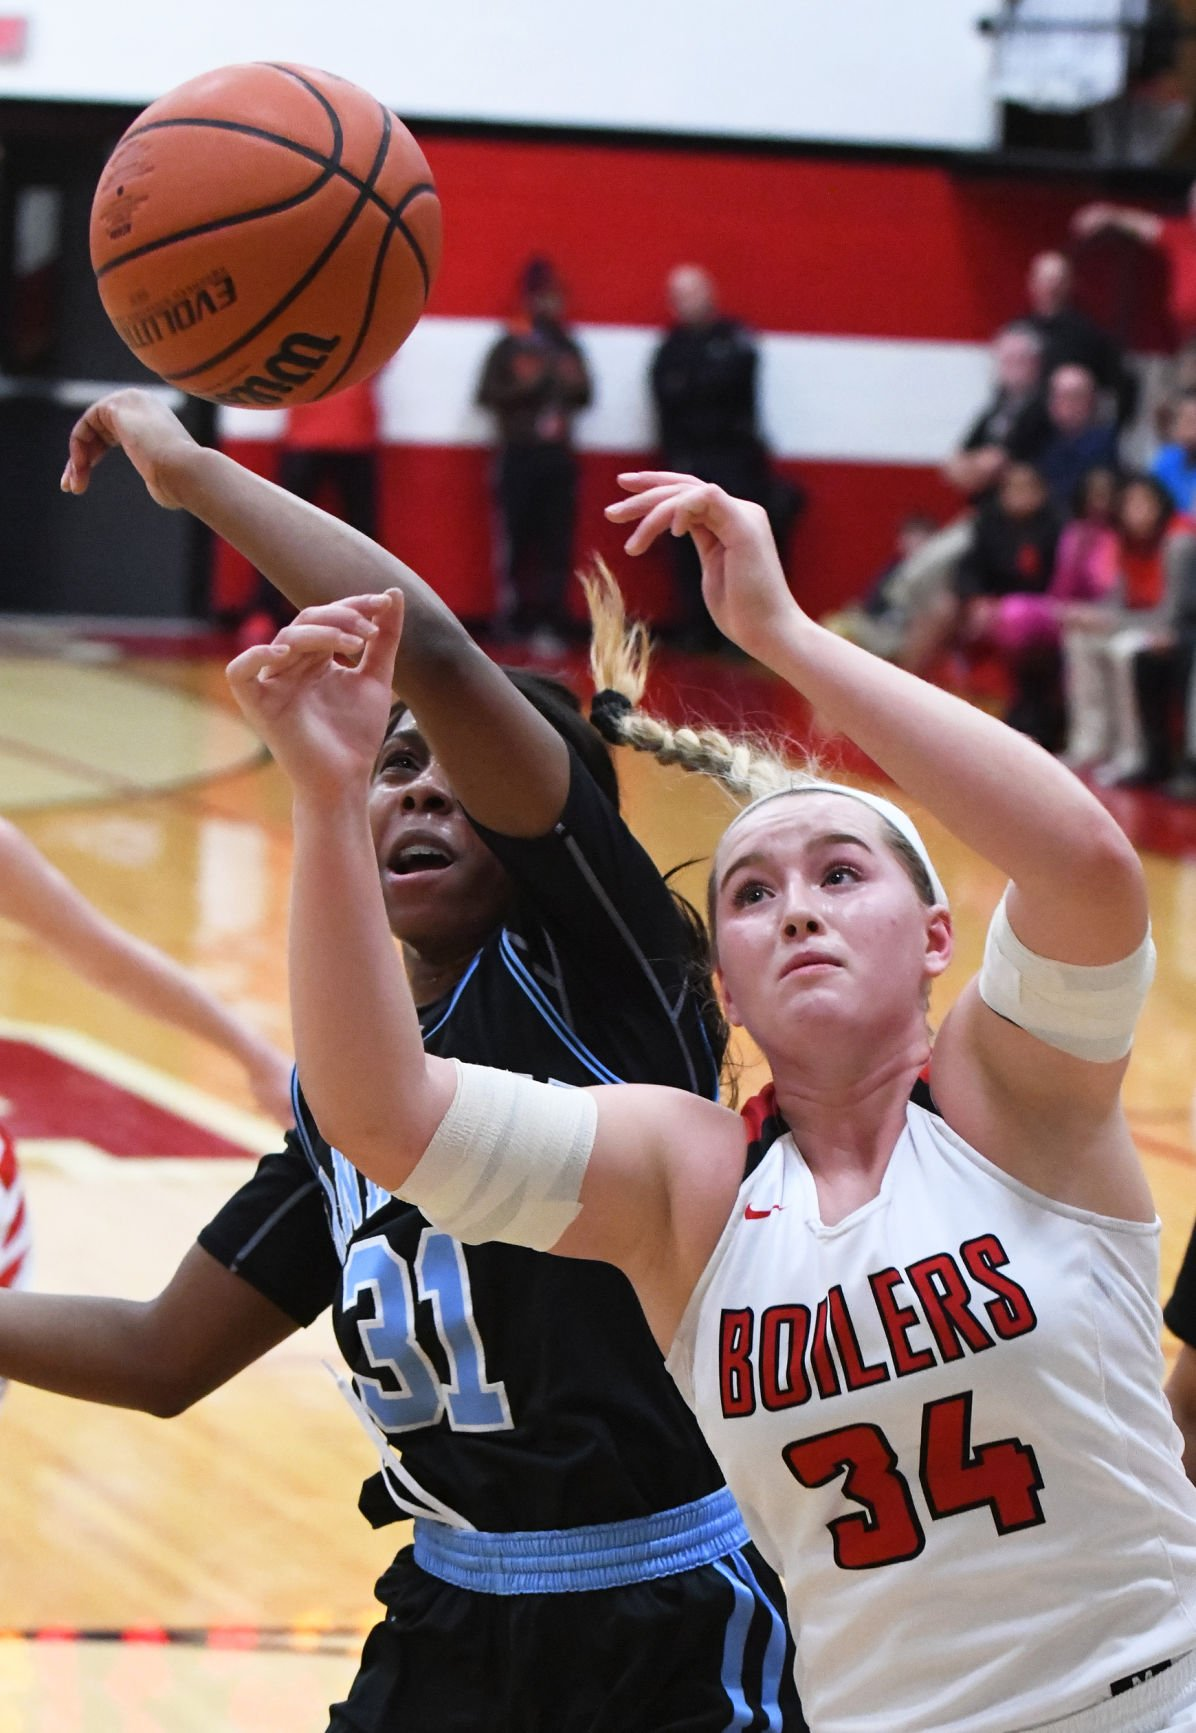 Herscher out, city girls teams in at ONU Thanksgiving Classic